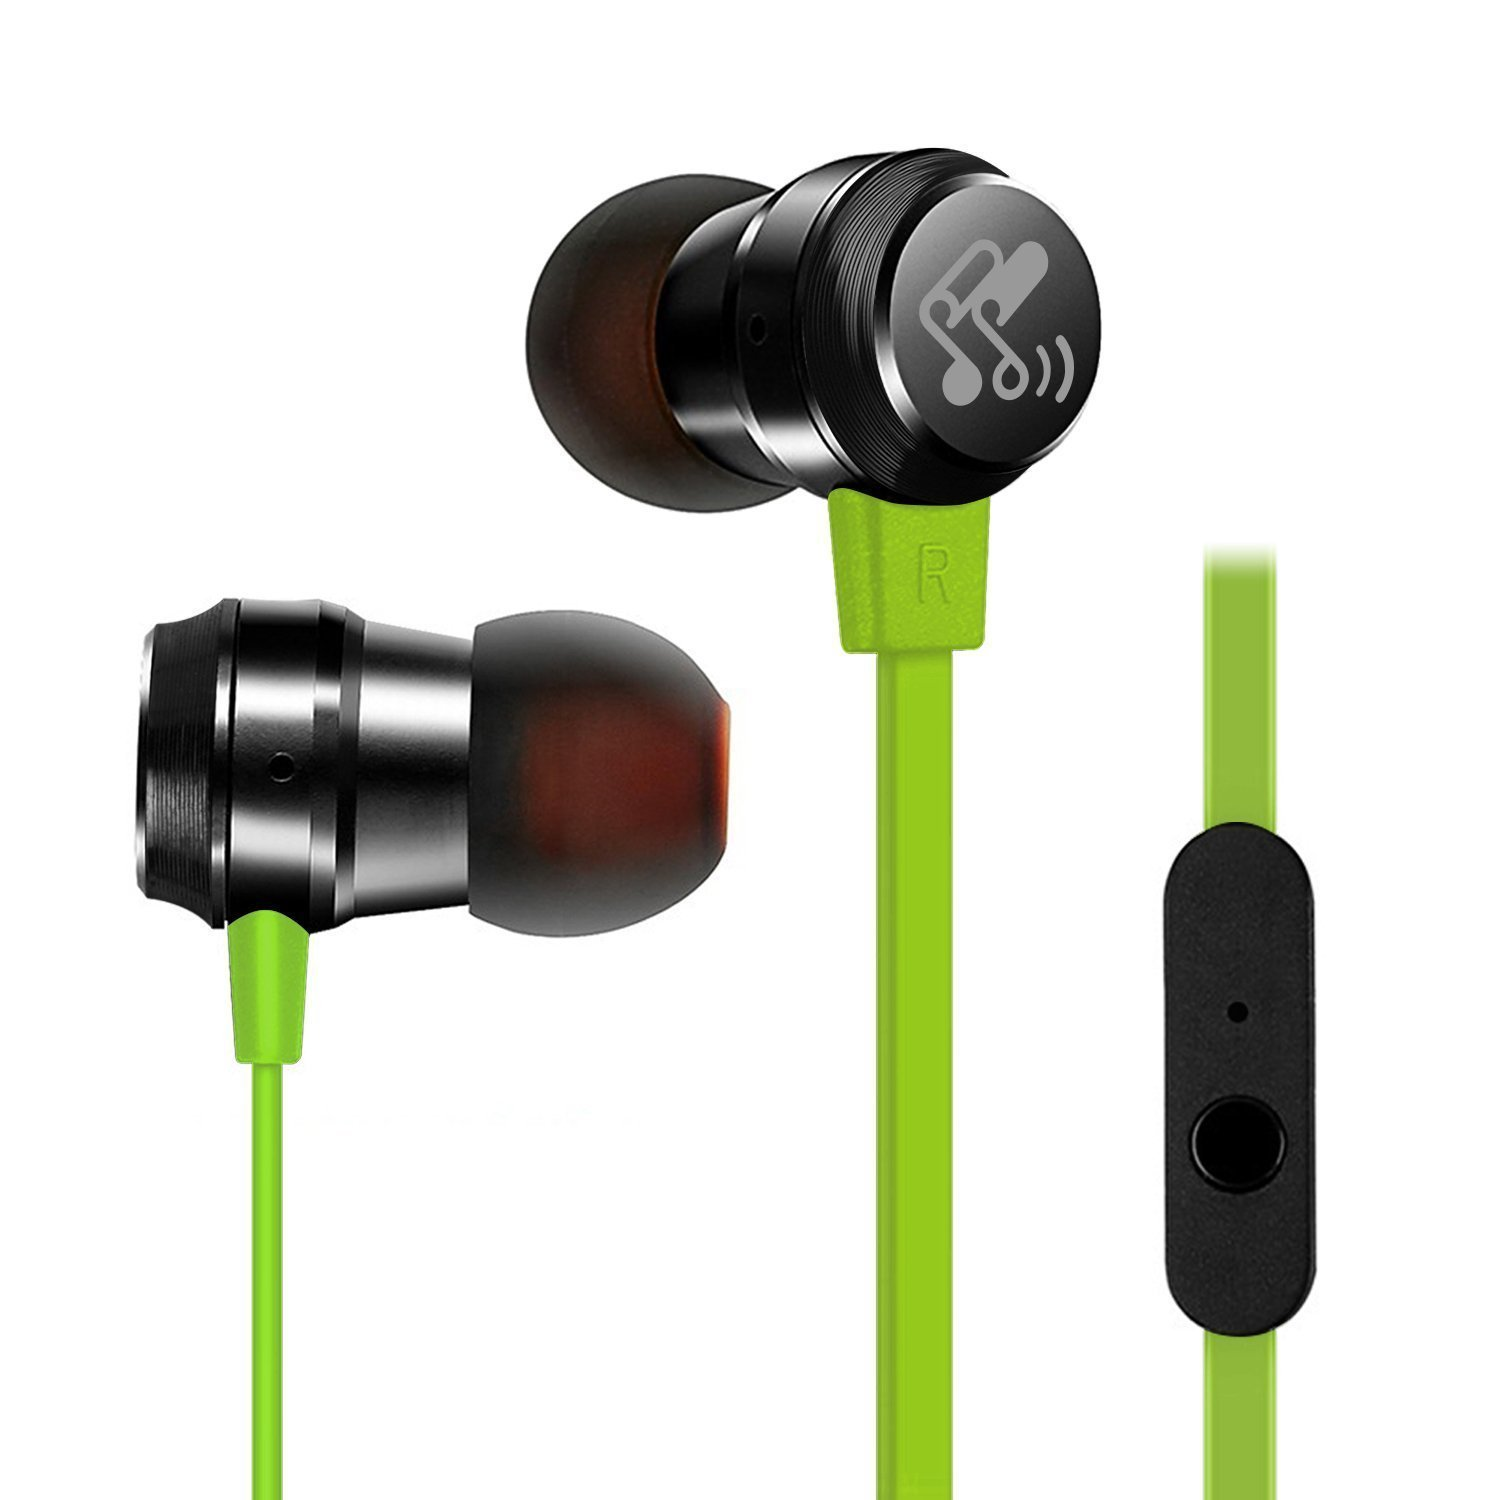 SoundPEATS In-Ear Headphones Noise Cancelling Earphones Stereo Ergonomic Comfort-Fit Earbuds with Mi